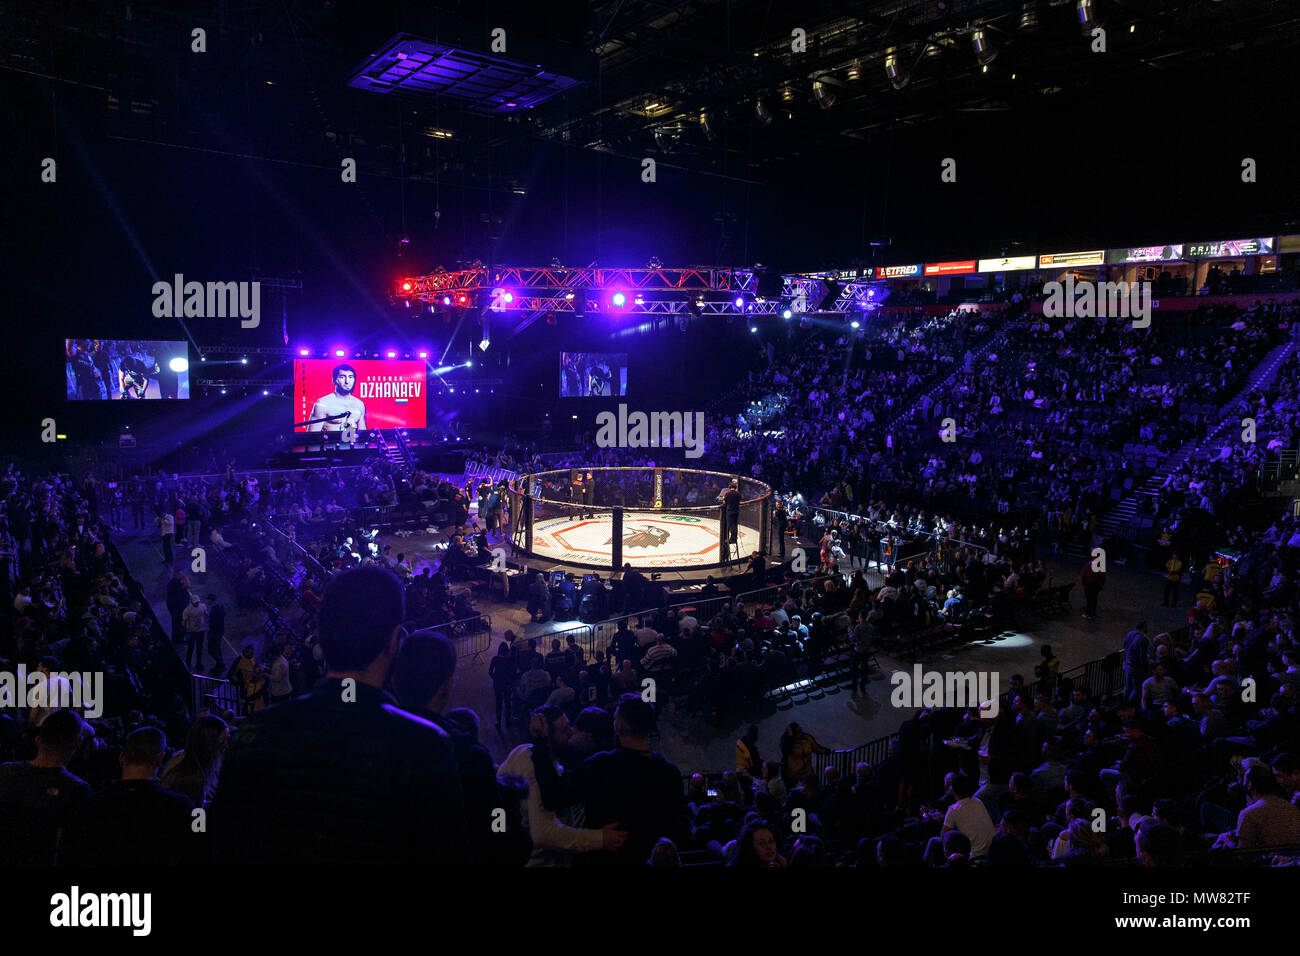 The interior of Manchester Arena in 2017 during a Mixed Martial Arts (MMA) event held by the Russian promotion Absolute Championship Berkut. - Stock Image